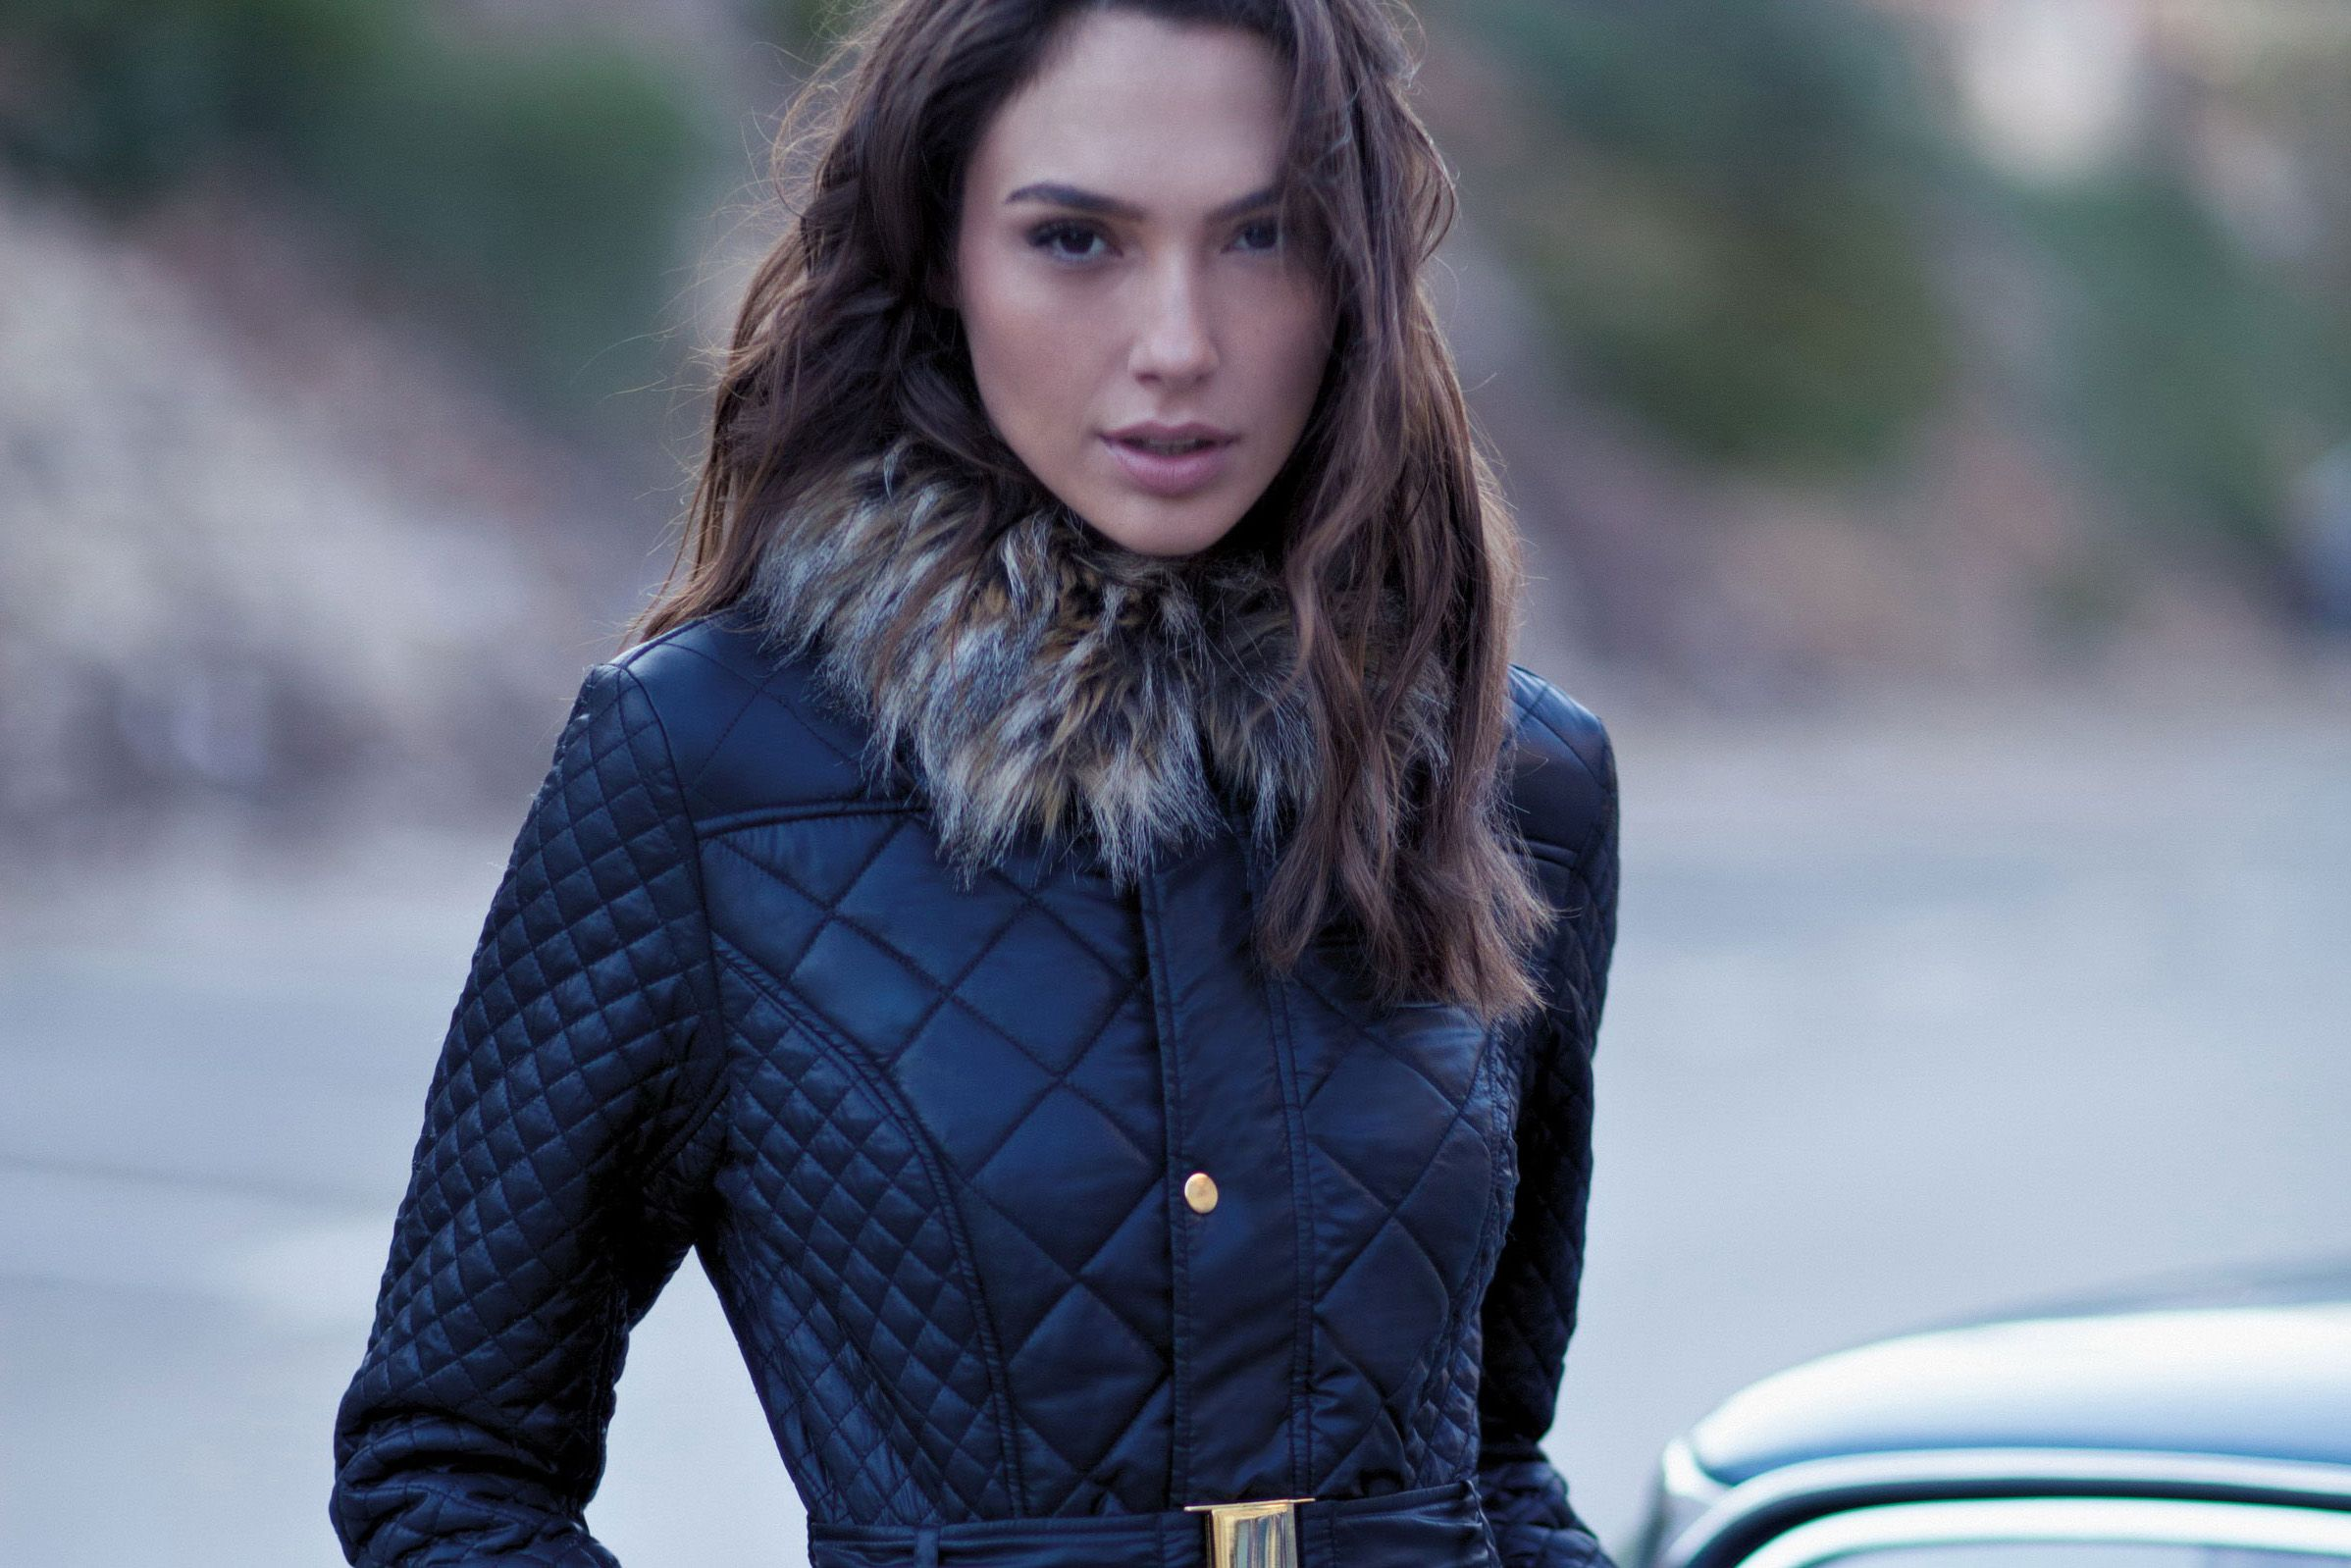 Gal gadot wallpapers free fashiondiy pinterest gal gadot and gal gadot wallpapers free hd wallpapers available in different resolution and sizes for our computer desktop backgrounds laptop mobile phones voltagebd Gallery